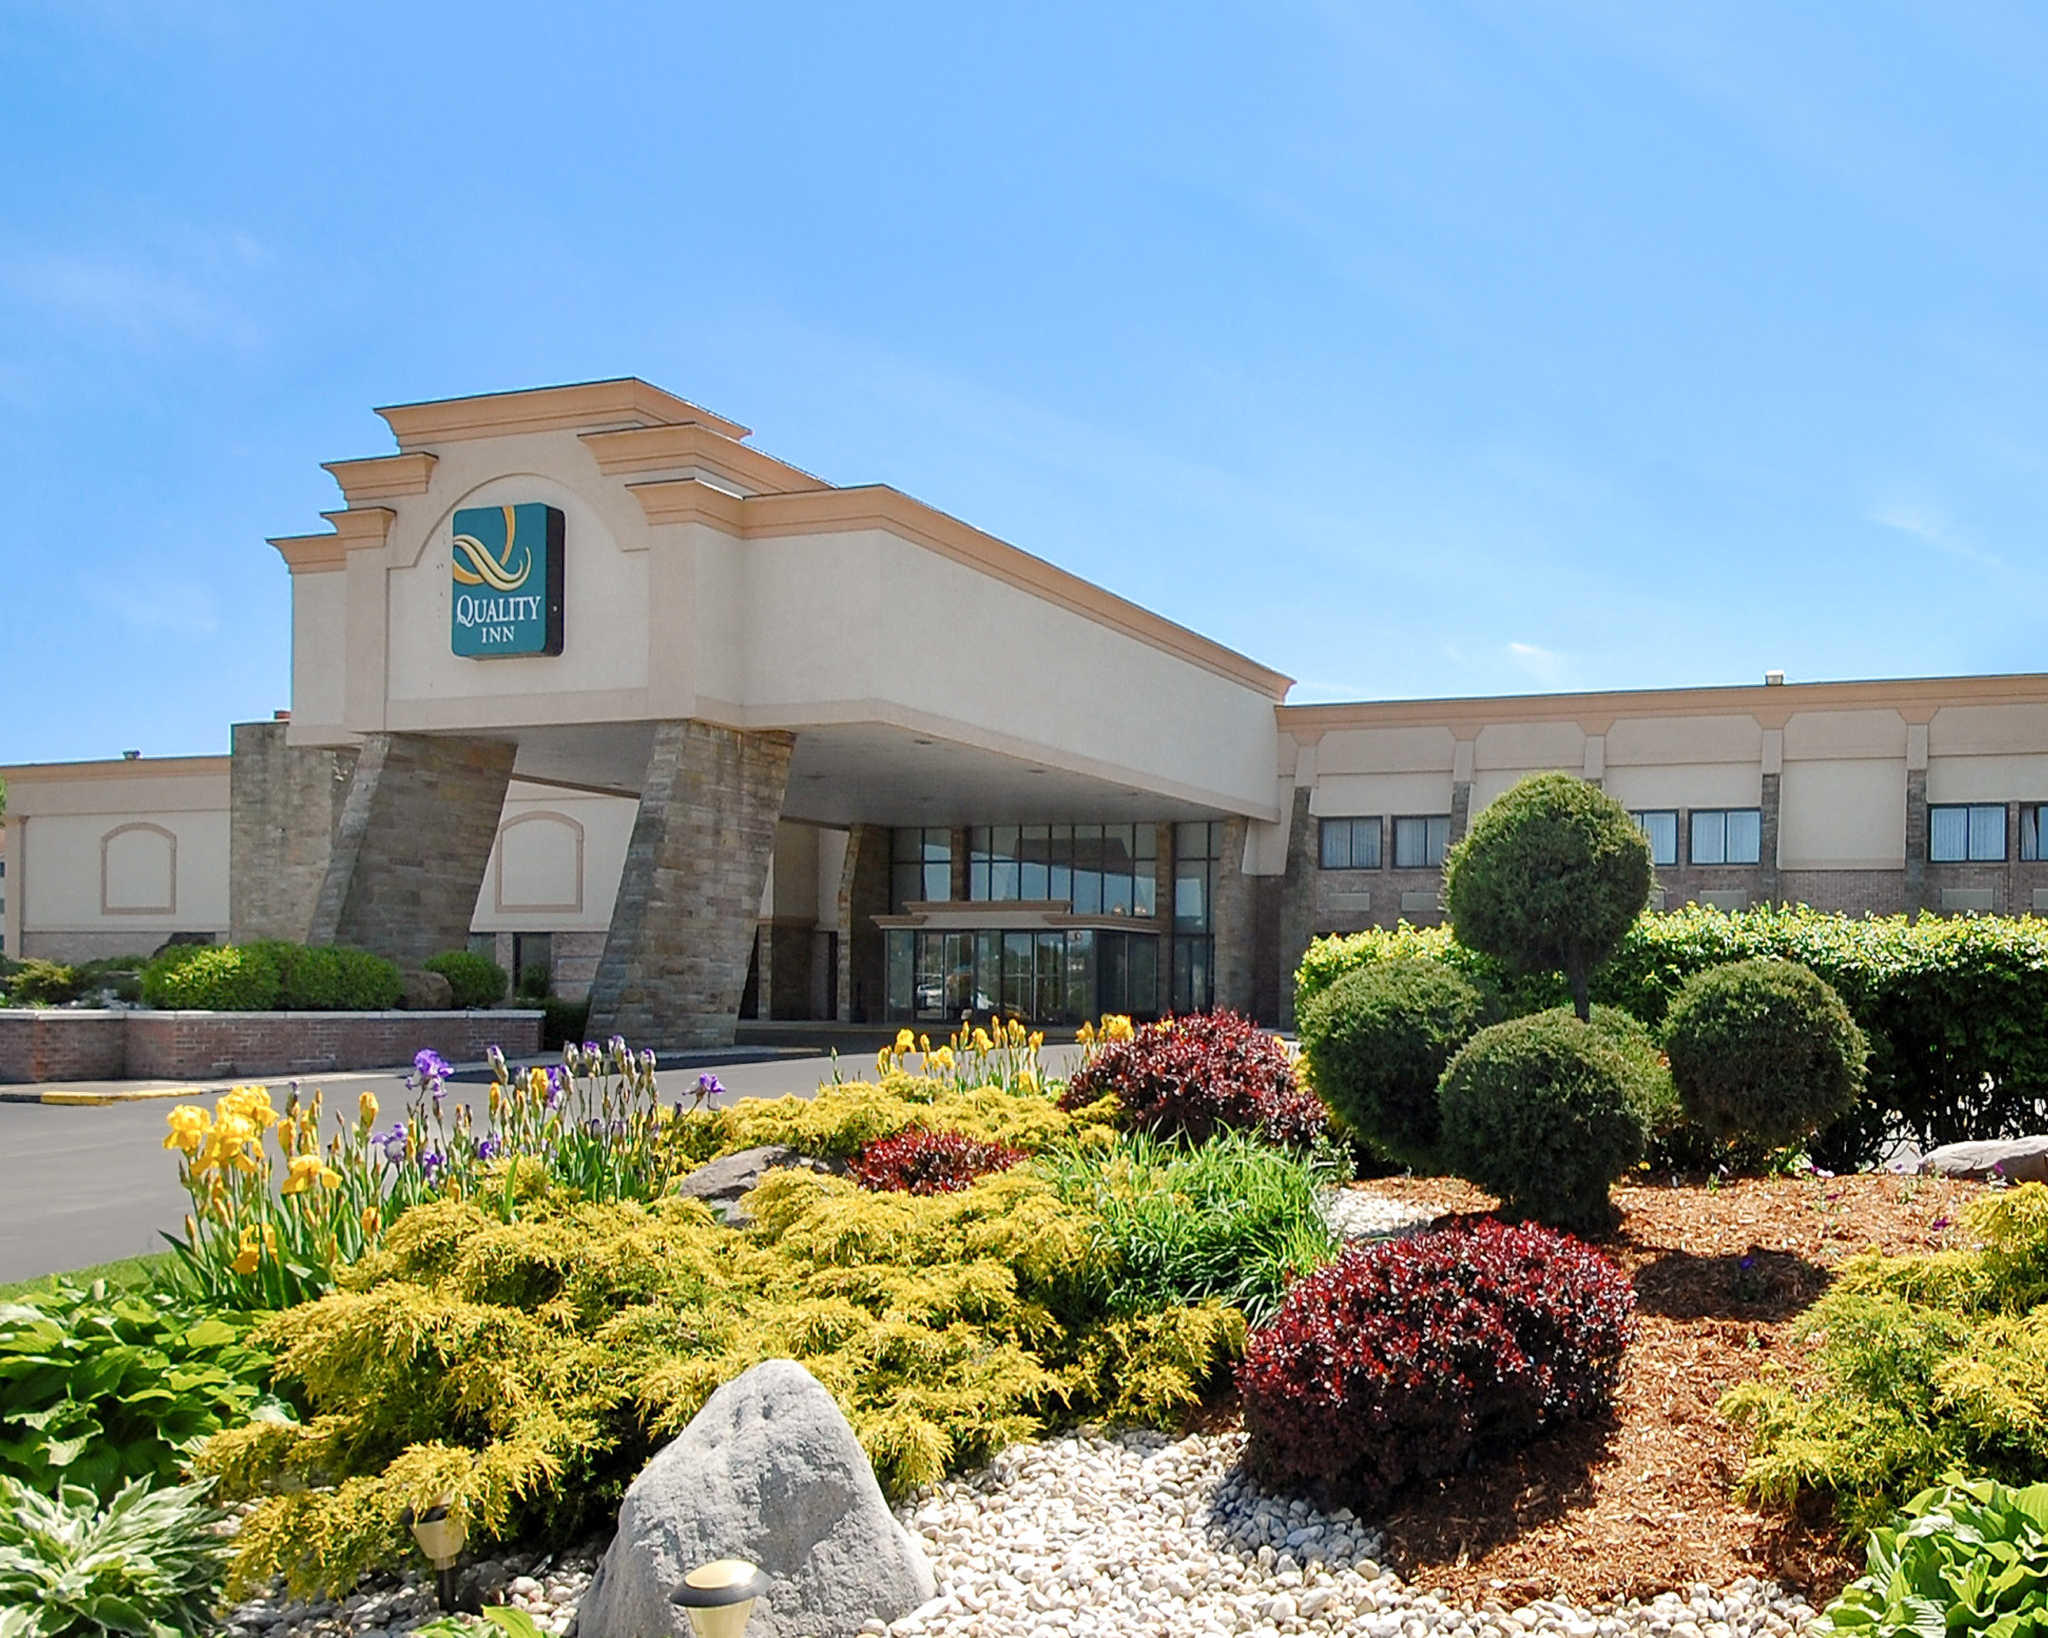 Quality Inn & Conference Center - Somerset, PA 15501 - (814)443-4646 | ShowMeLocal.com